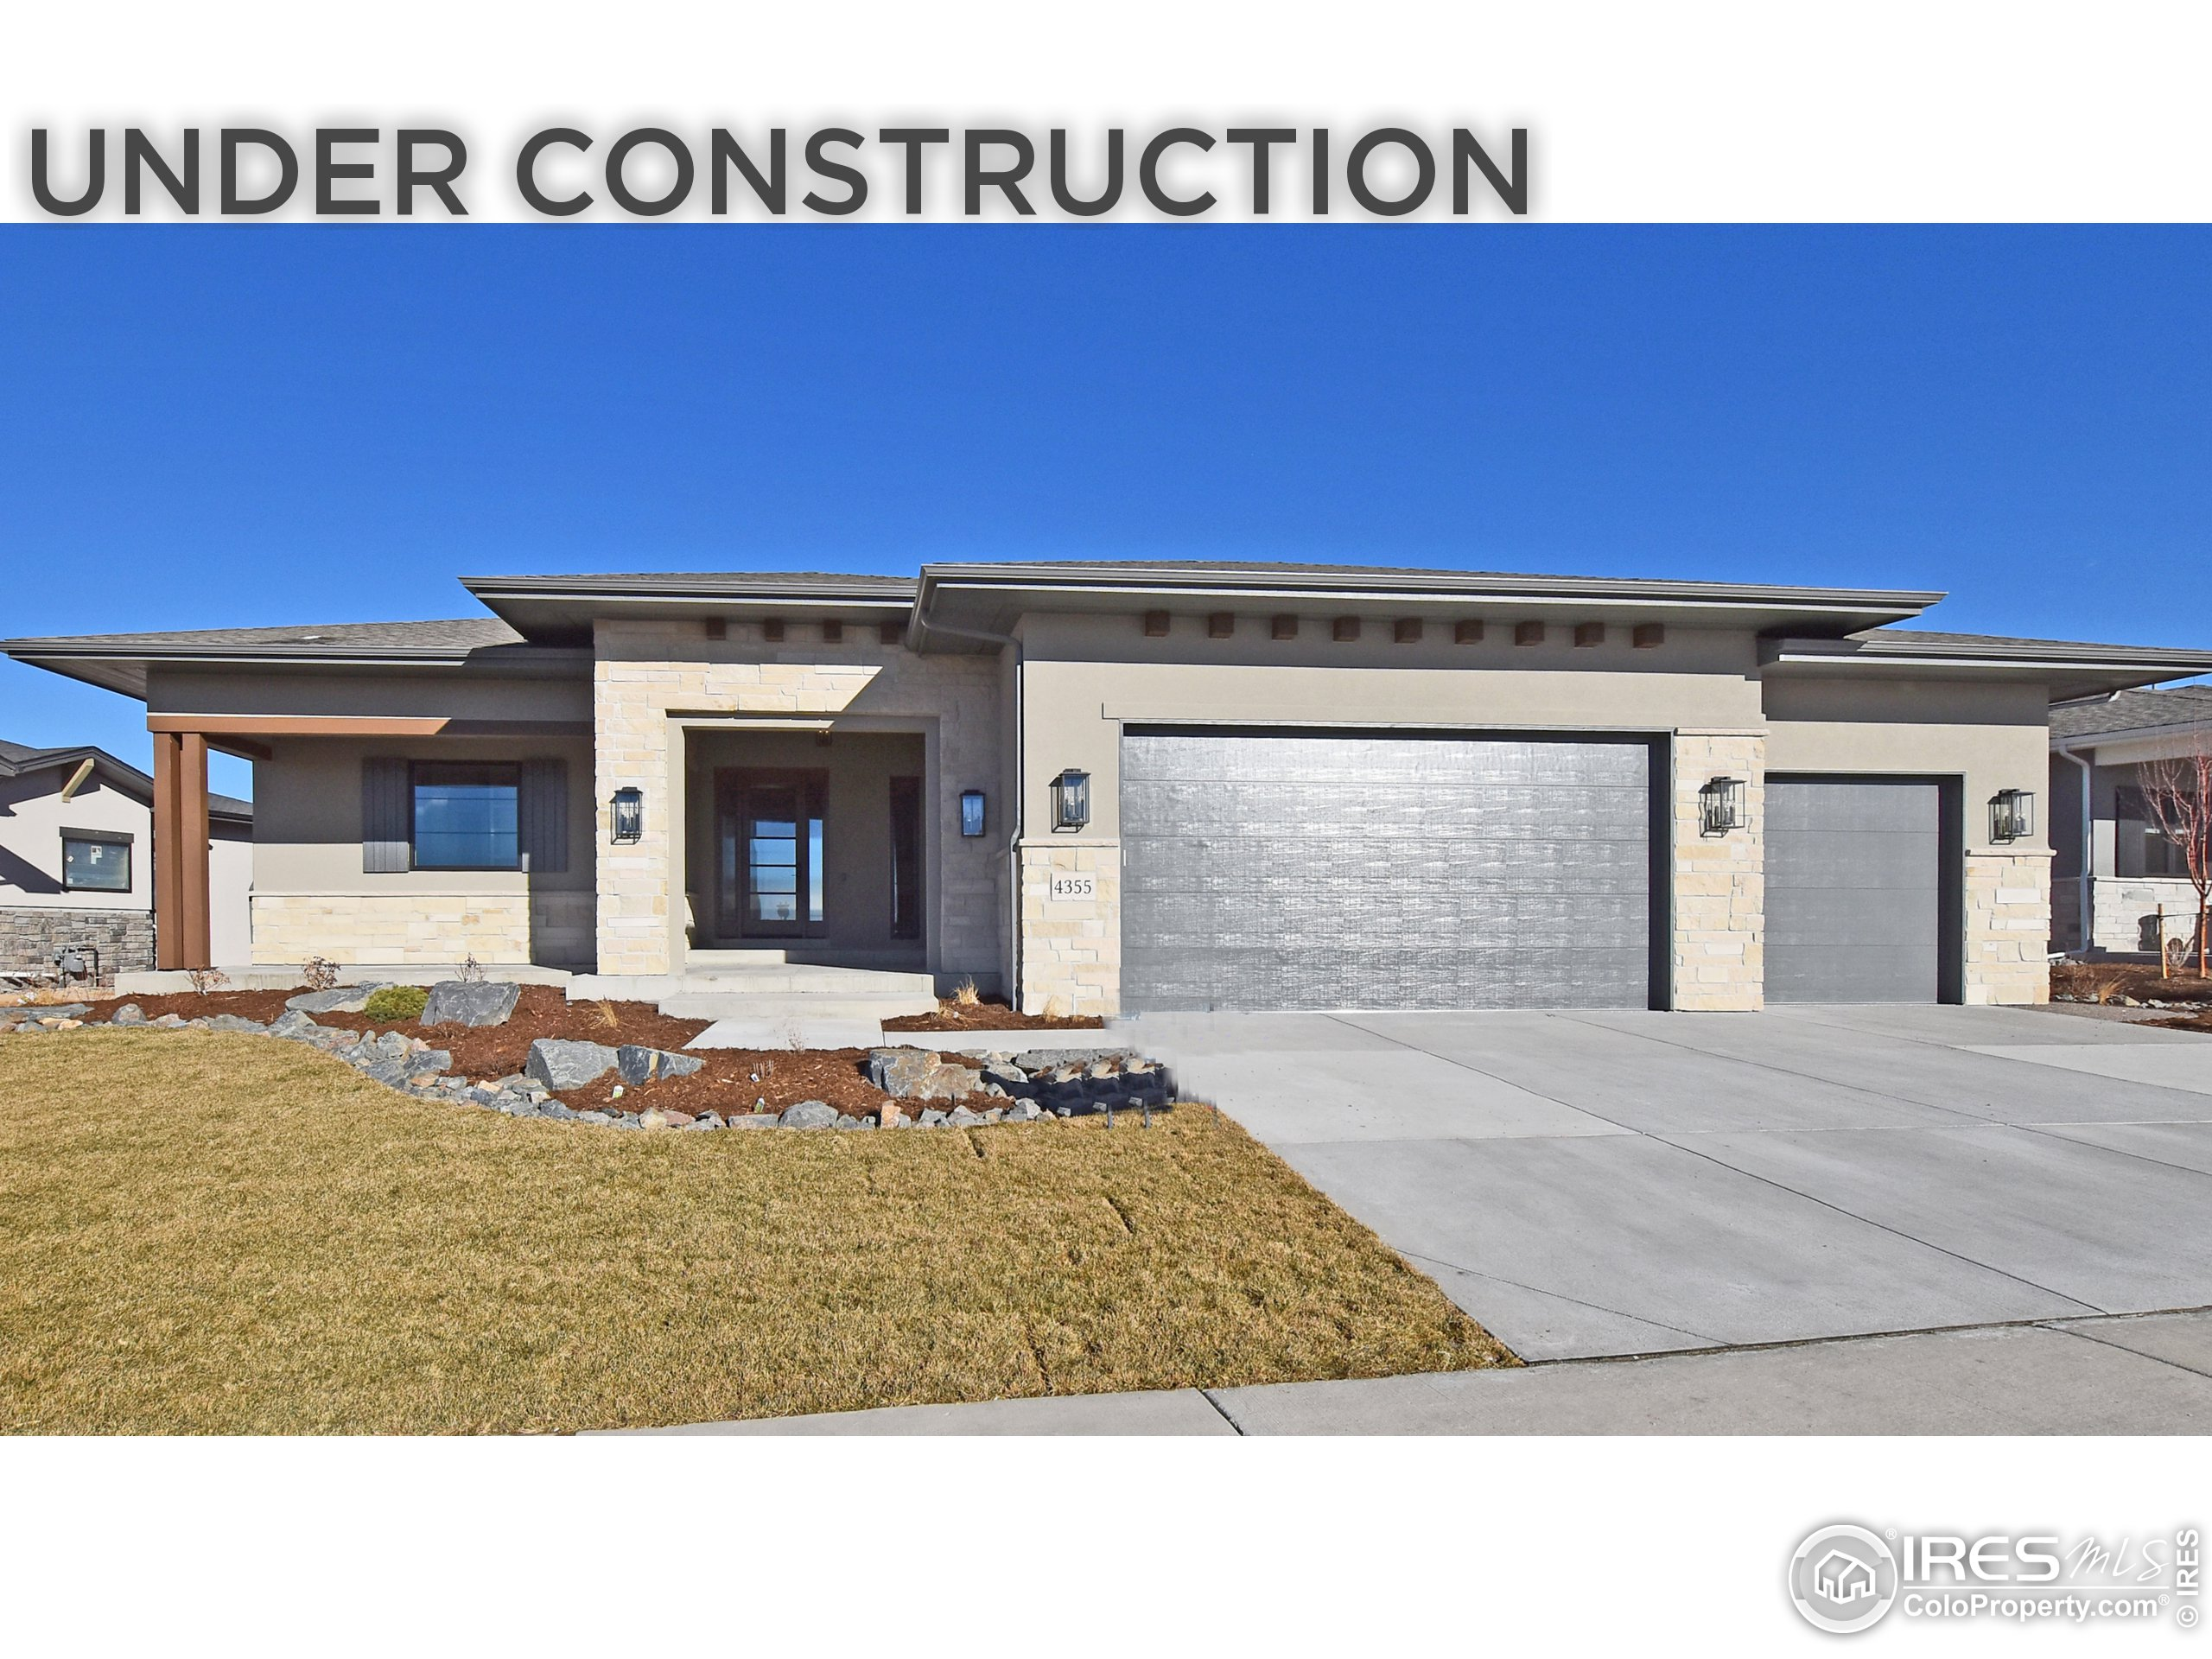 UNDER CONSTRUCTION.  COMPLETION DECEMBER 2021.  ALL PHOTOS FROM PREVIOUSLY SOLD HOME.